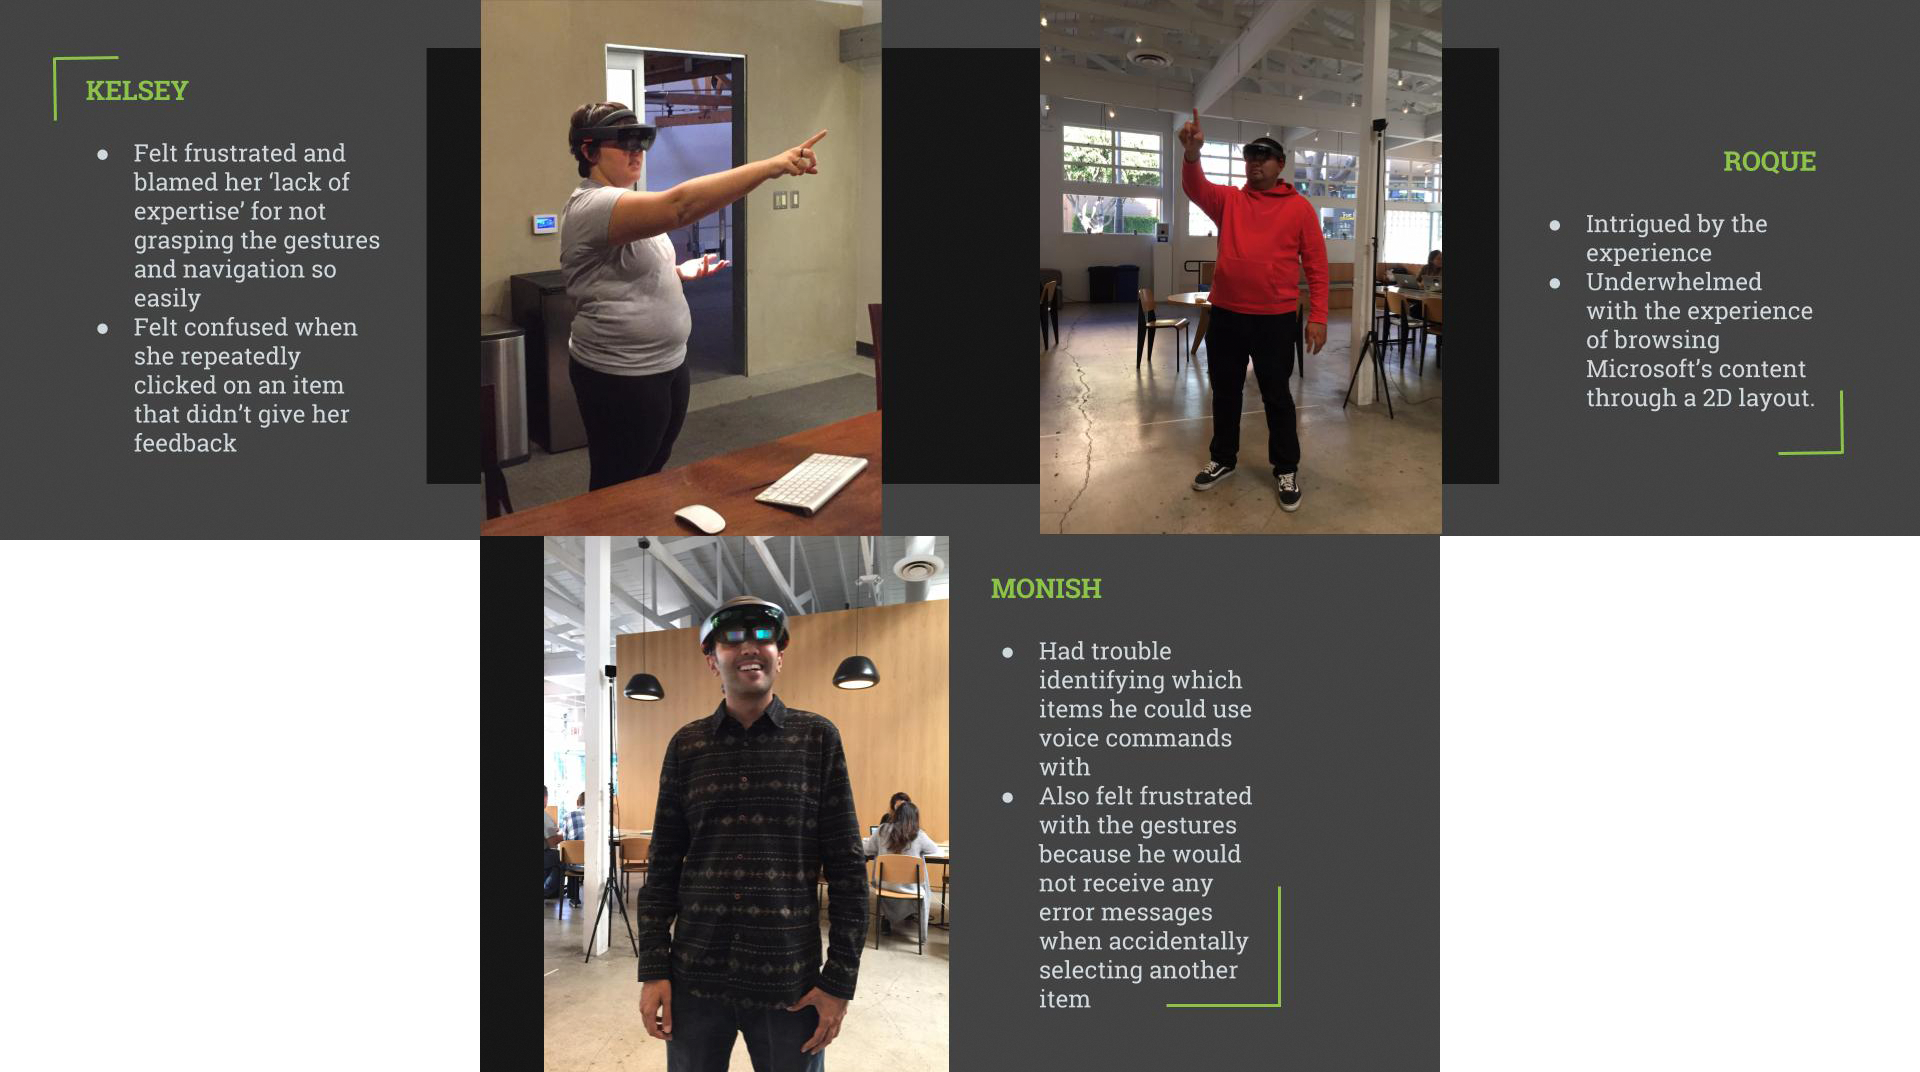 Photos of different actual users using the Hololens.